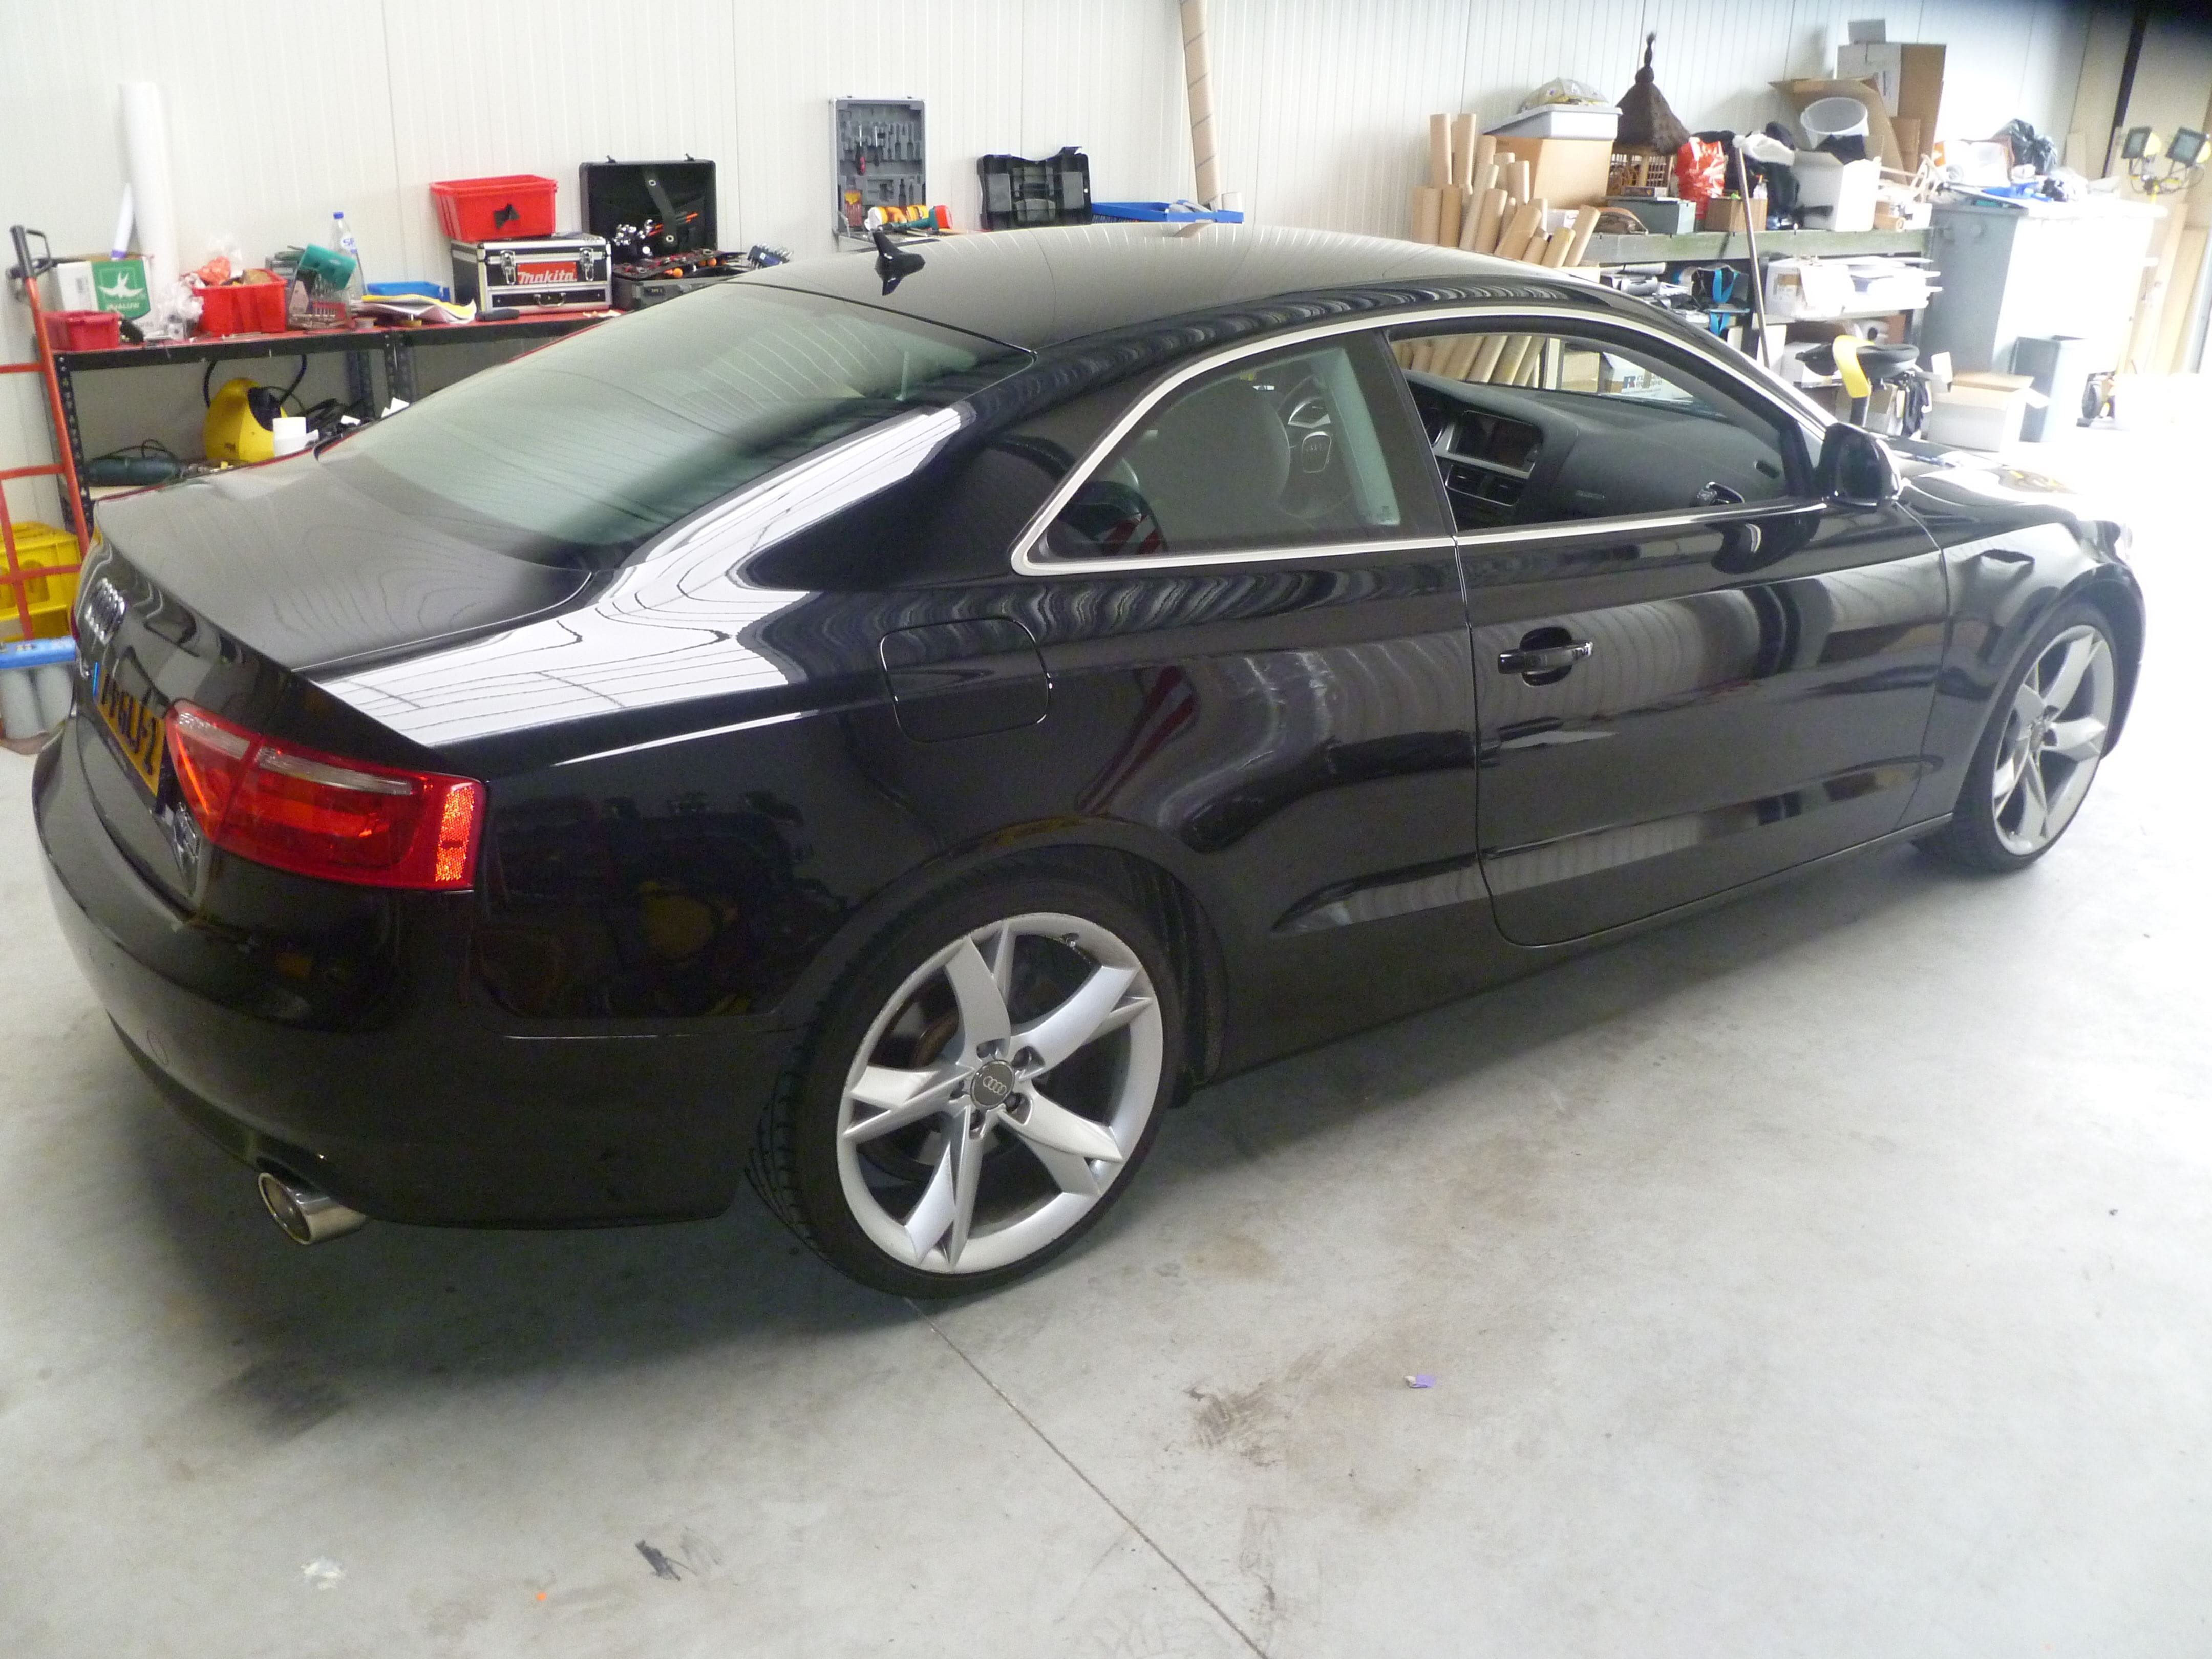 Audi A5 coupe met Metallic Witte Wrap, Carwrapping door Wrapmyride.nu Foto-nr:4672, ©2020